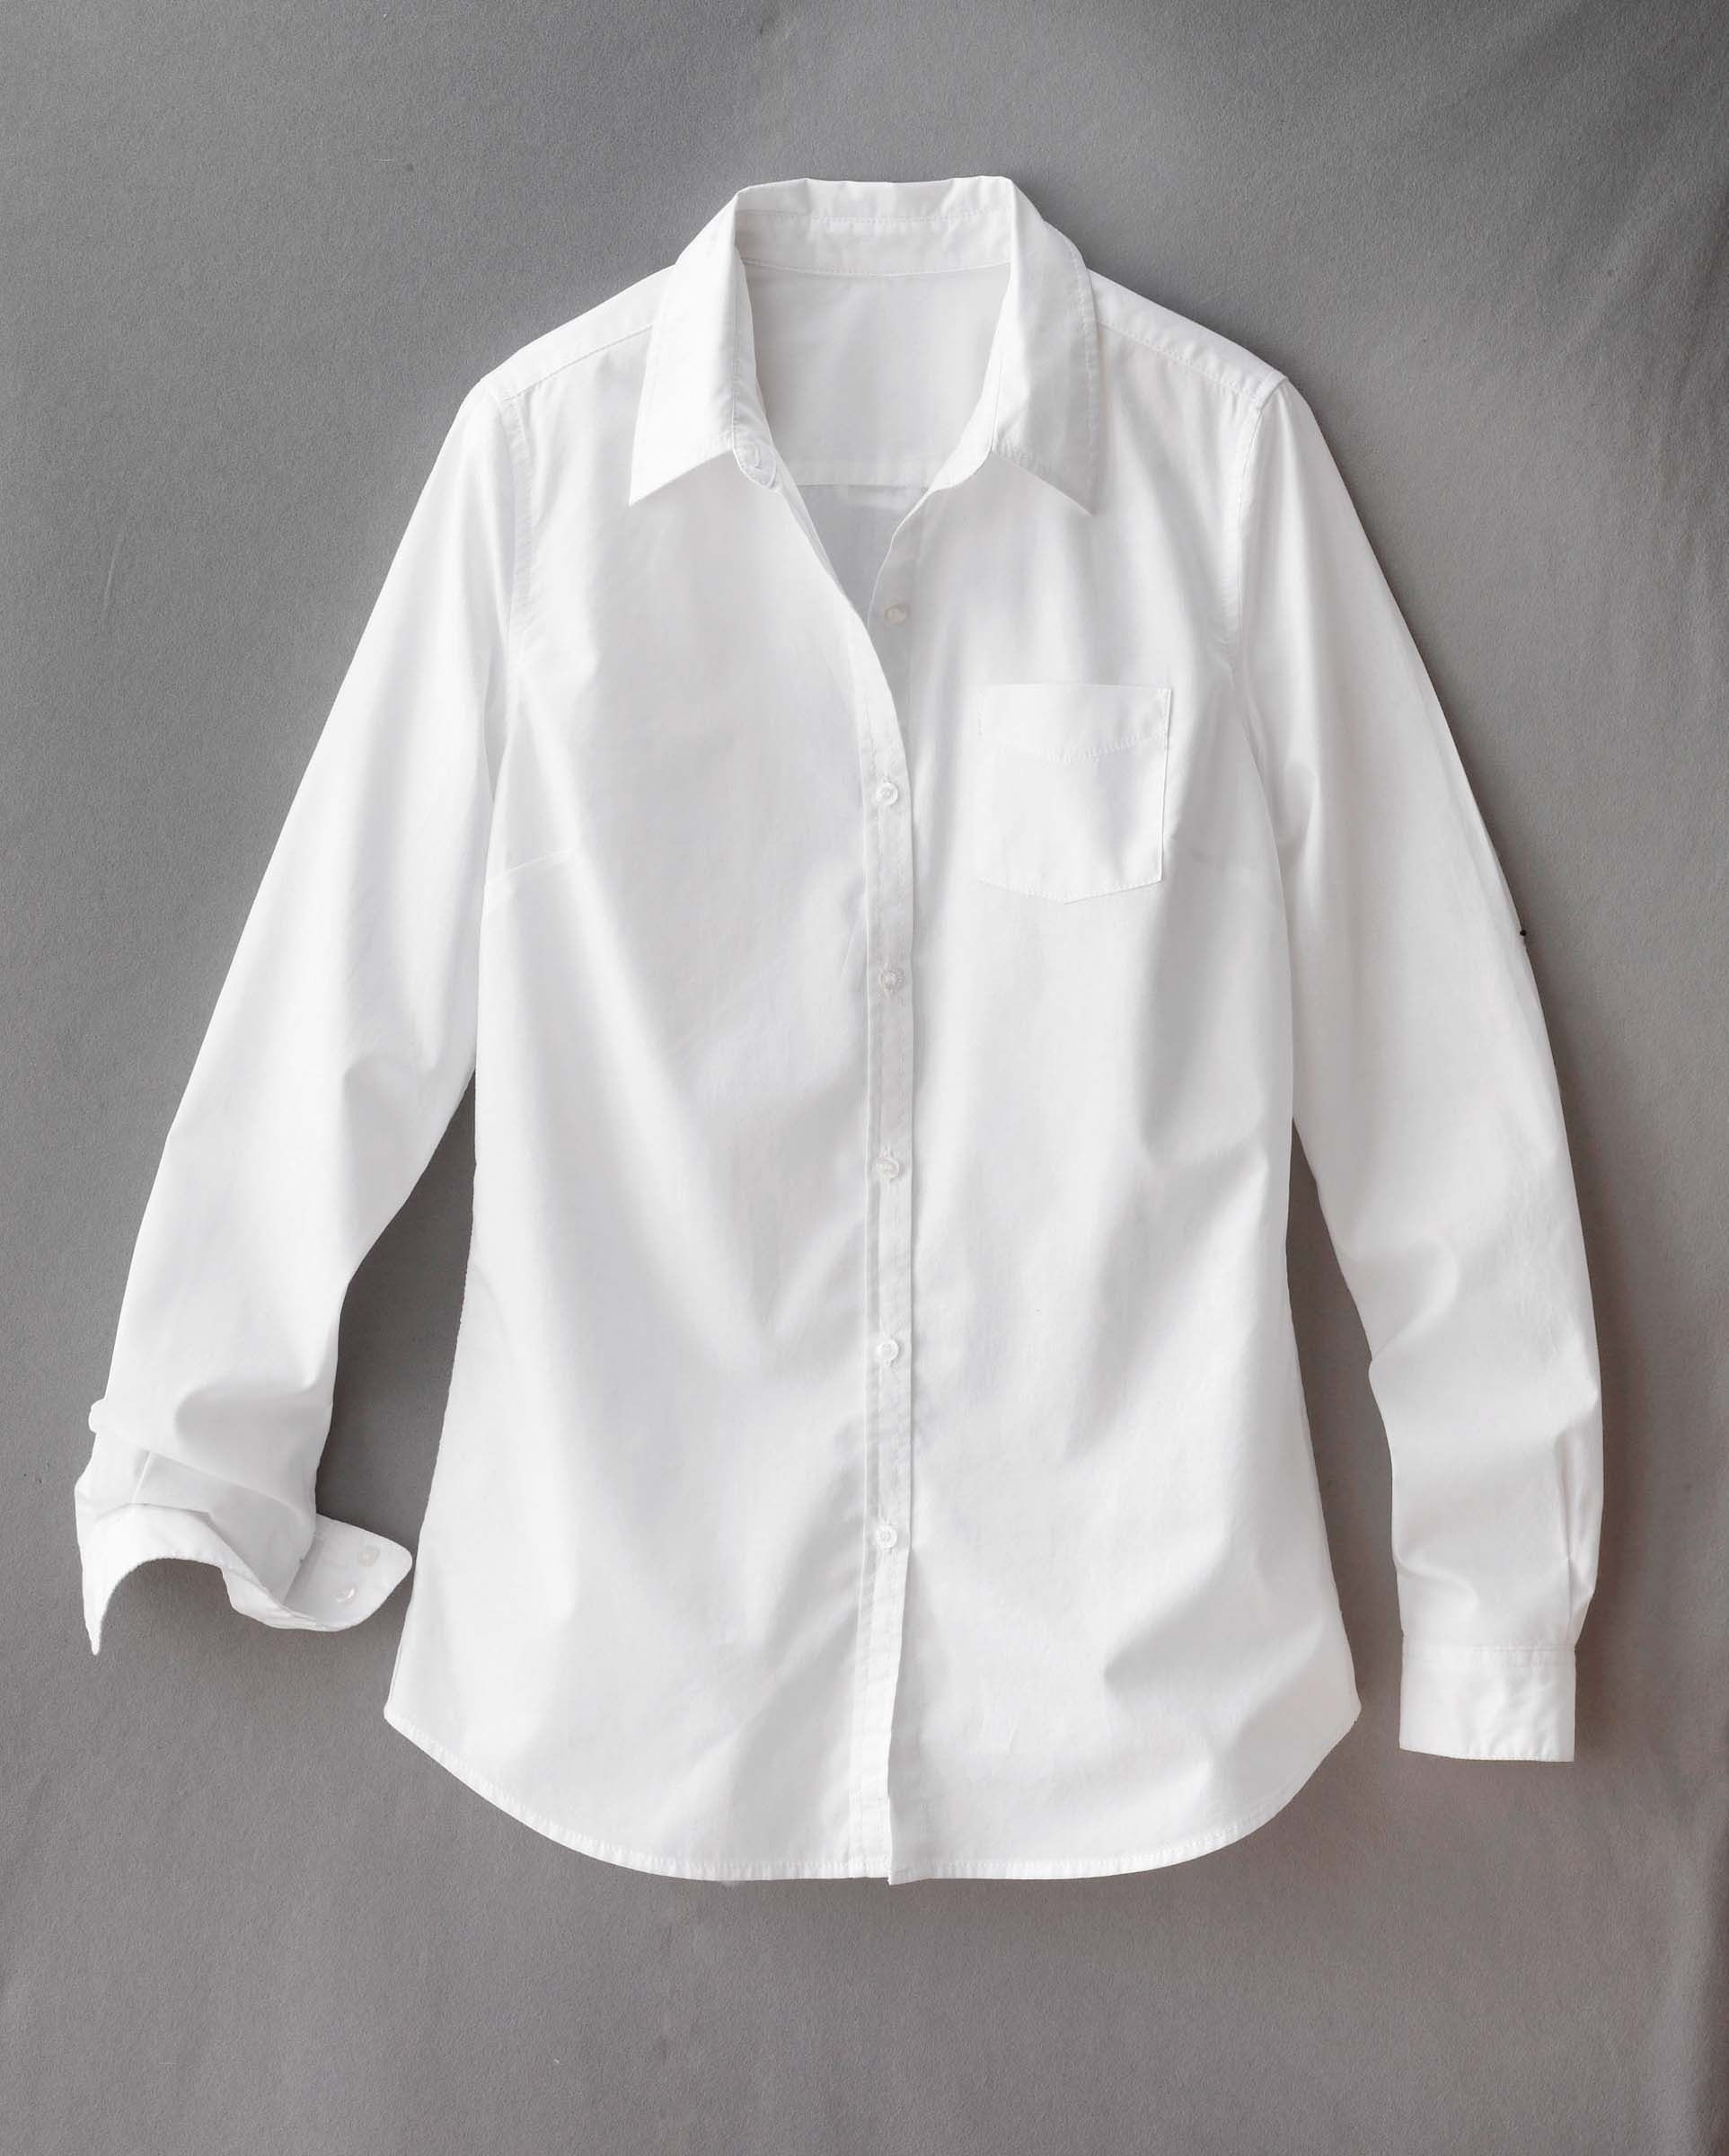 White Crisp Shirt | Is Shirt